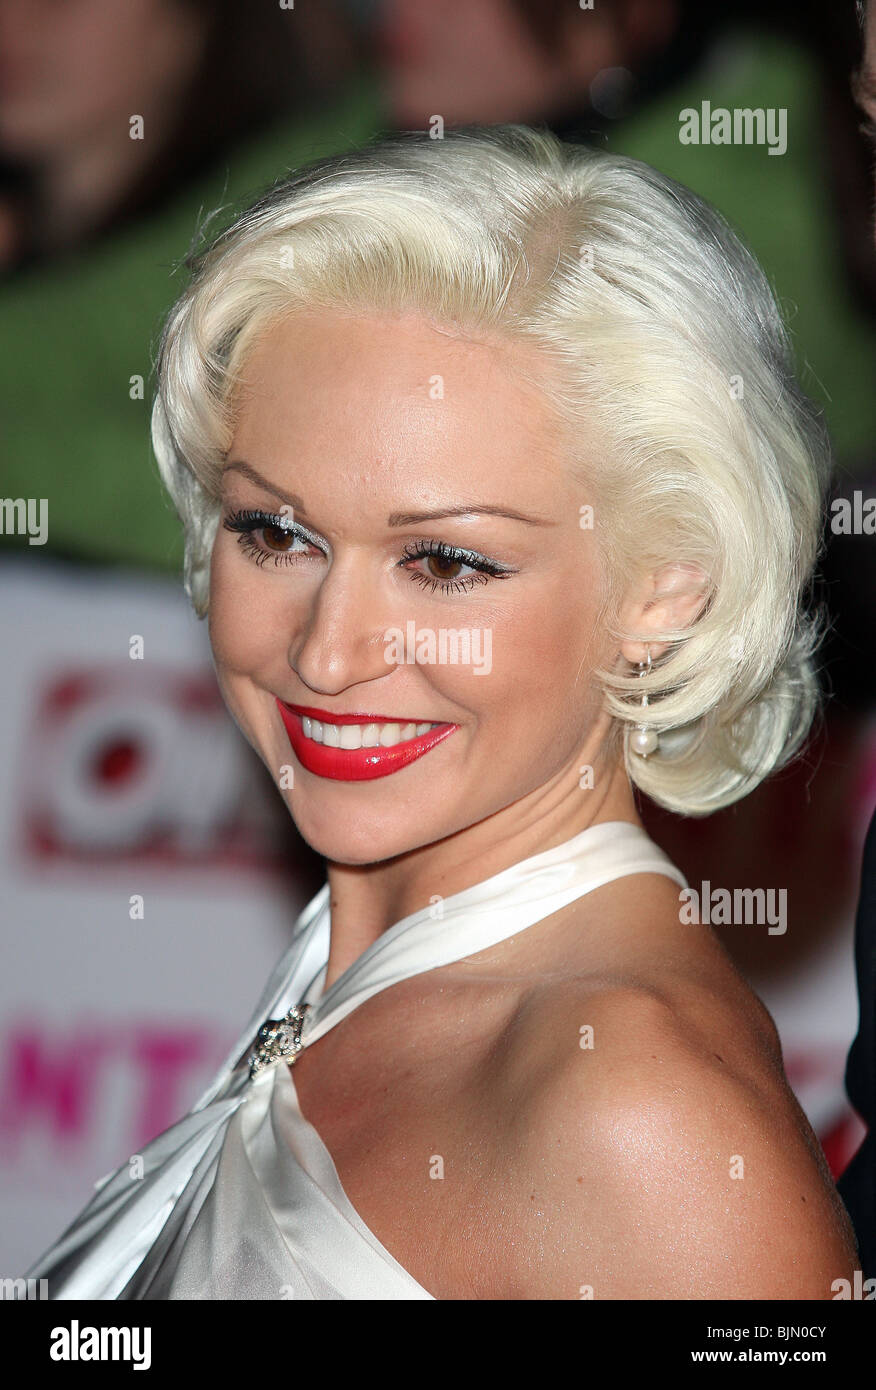 KRISTINA RIHANOFF NATIONAL TELEVISION AWARDS 2008 THE ROYAL ALBERT HALL LONDON ENGLAND 29 October 2008 - Stock Image